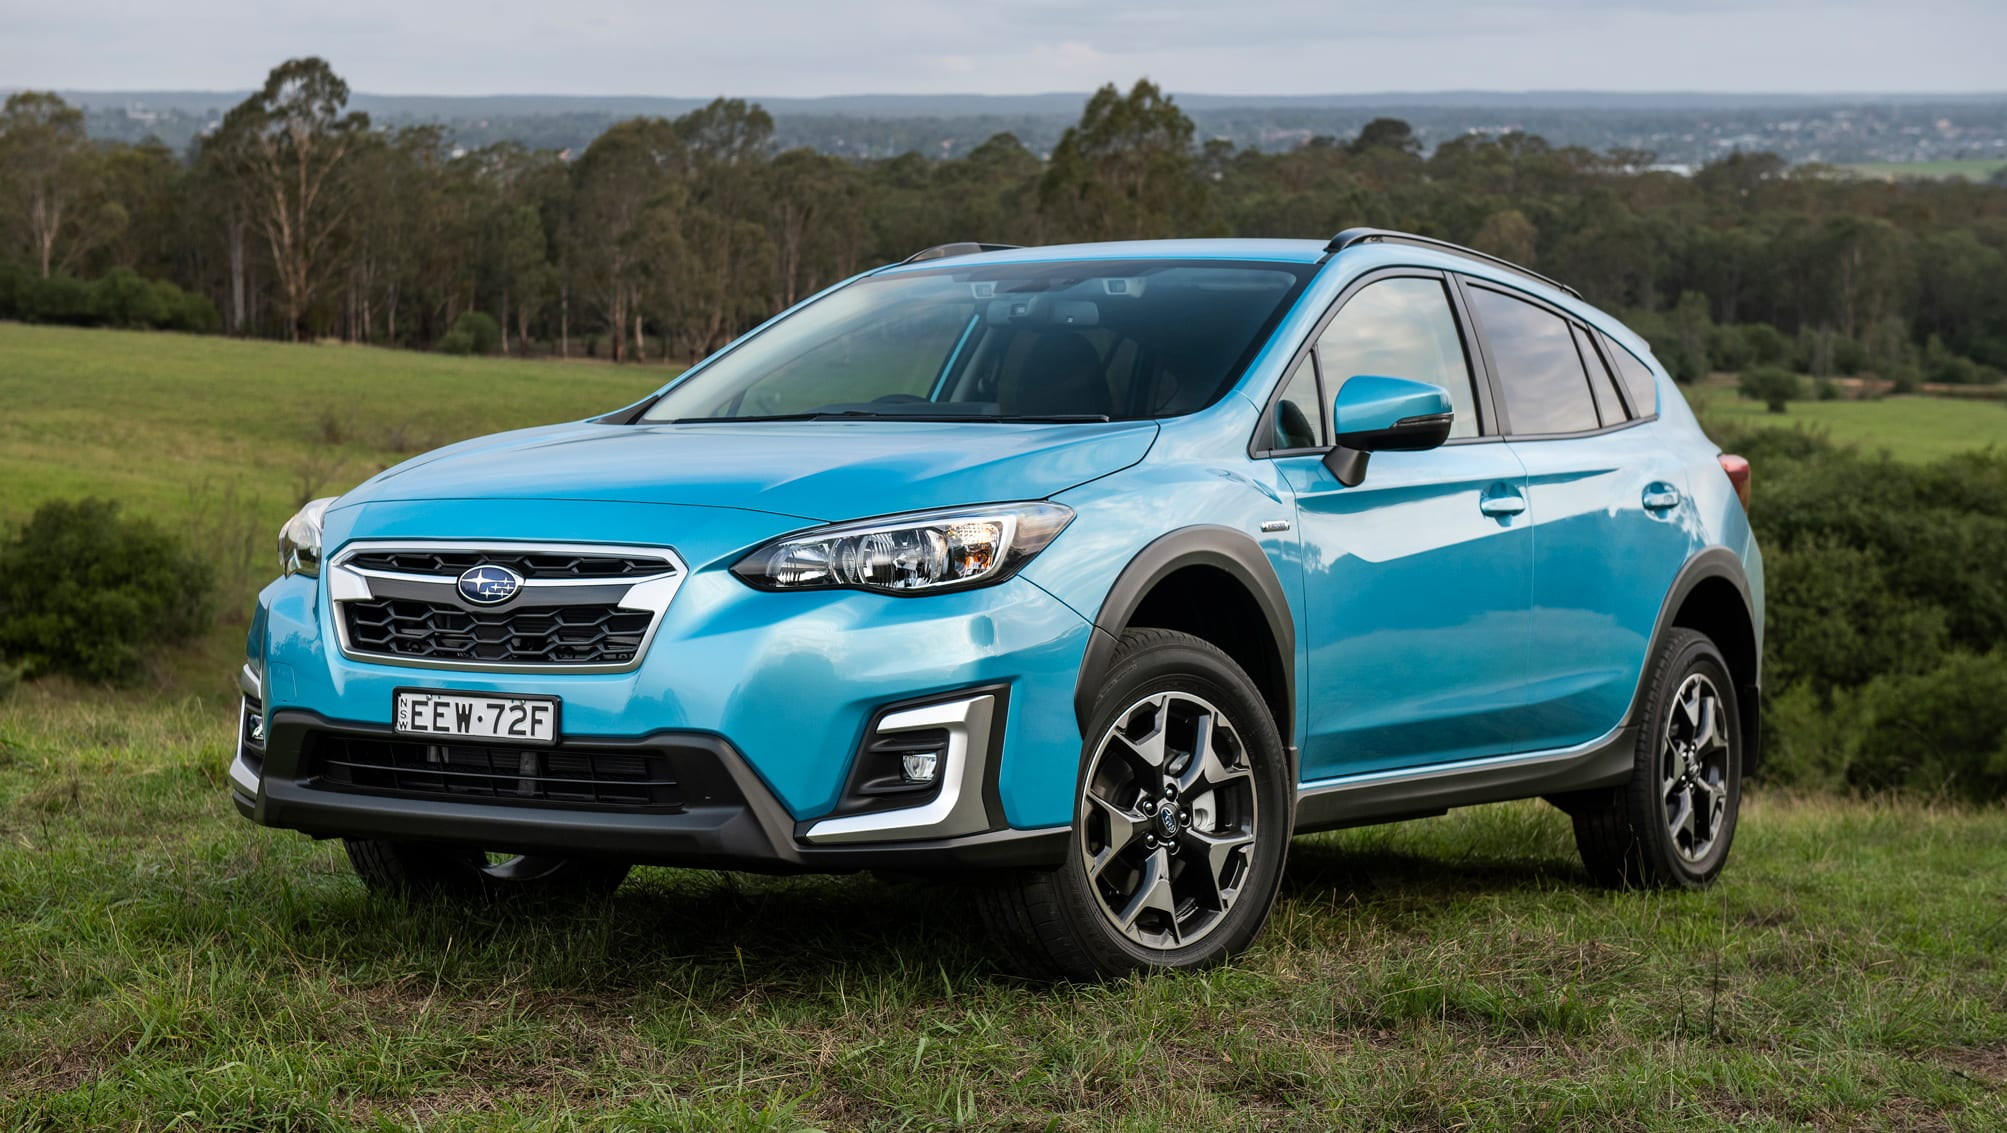 Every Subaru Will Turn Electric From 2030: Brand's Boxer - 2022 Subaru Crosstrek 4Wd Release Date, Safety Update, Changes